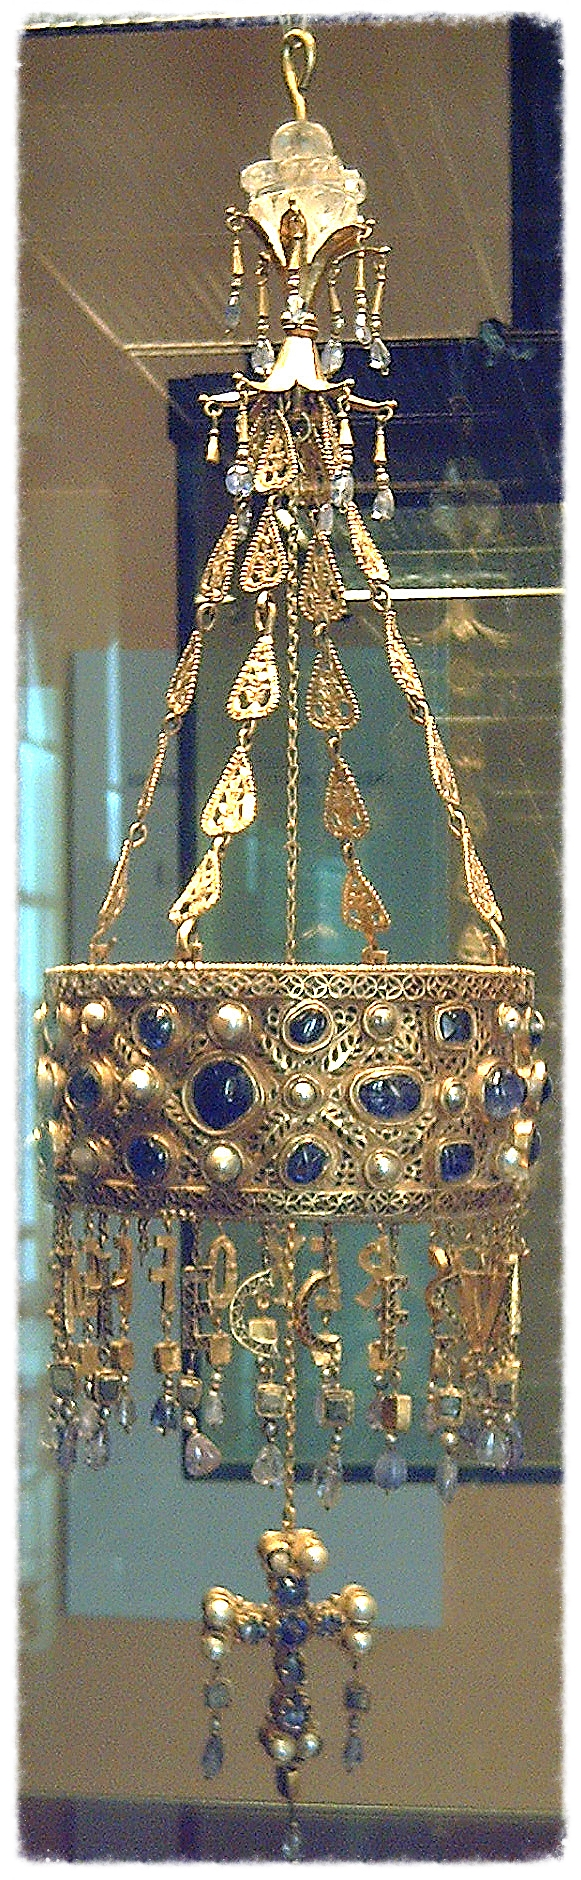 King Reccesuinth's votice crown is set with sapphires. Image from Wikipedia.